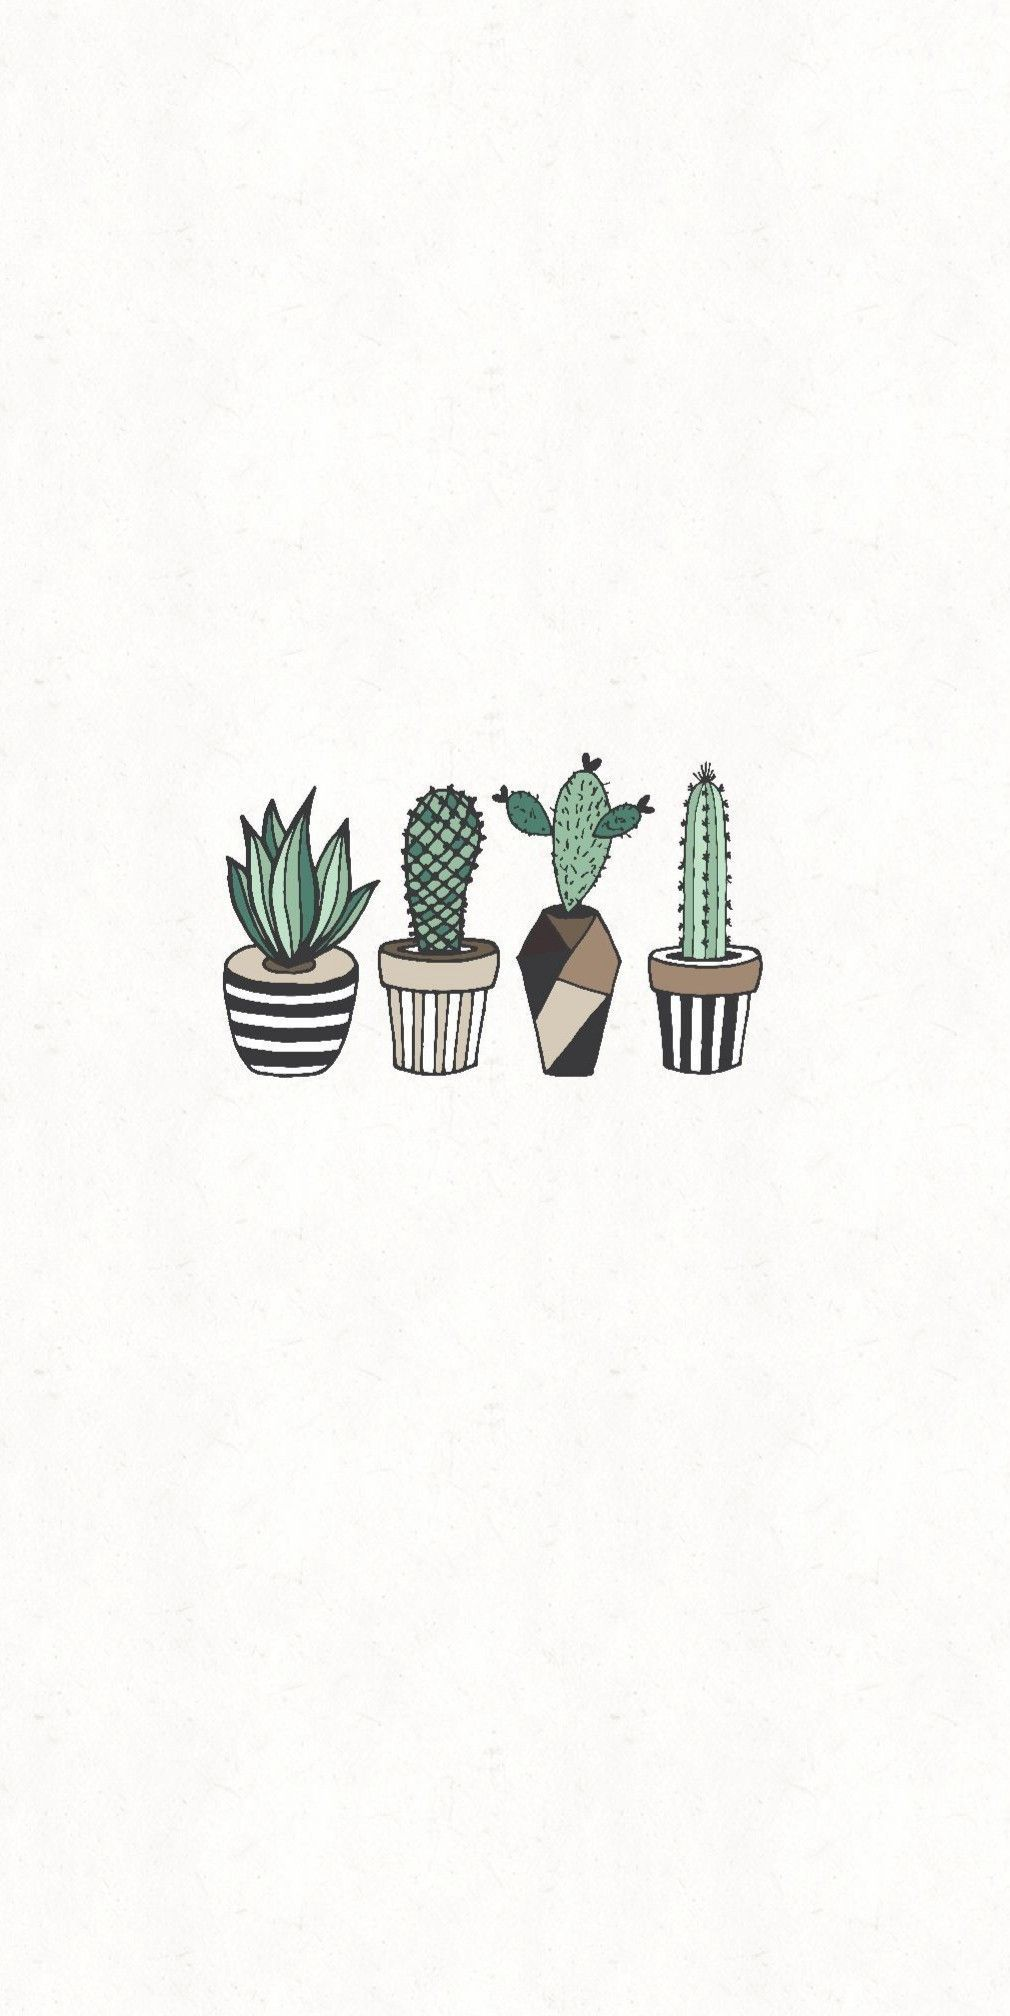 Aesthetic Cactus Wallpaper : aesthetic, cactus, wallpaper, Walpapers, Cactus, Drawing,, Minimalist, Wallpaper,, Plant, Wallpaper